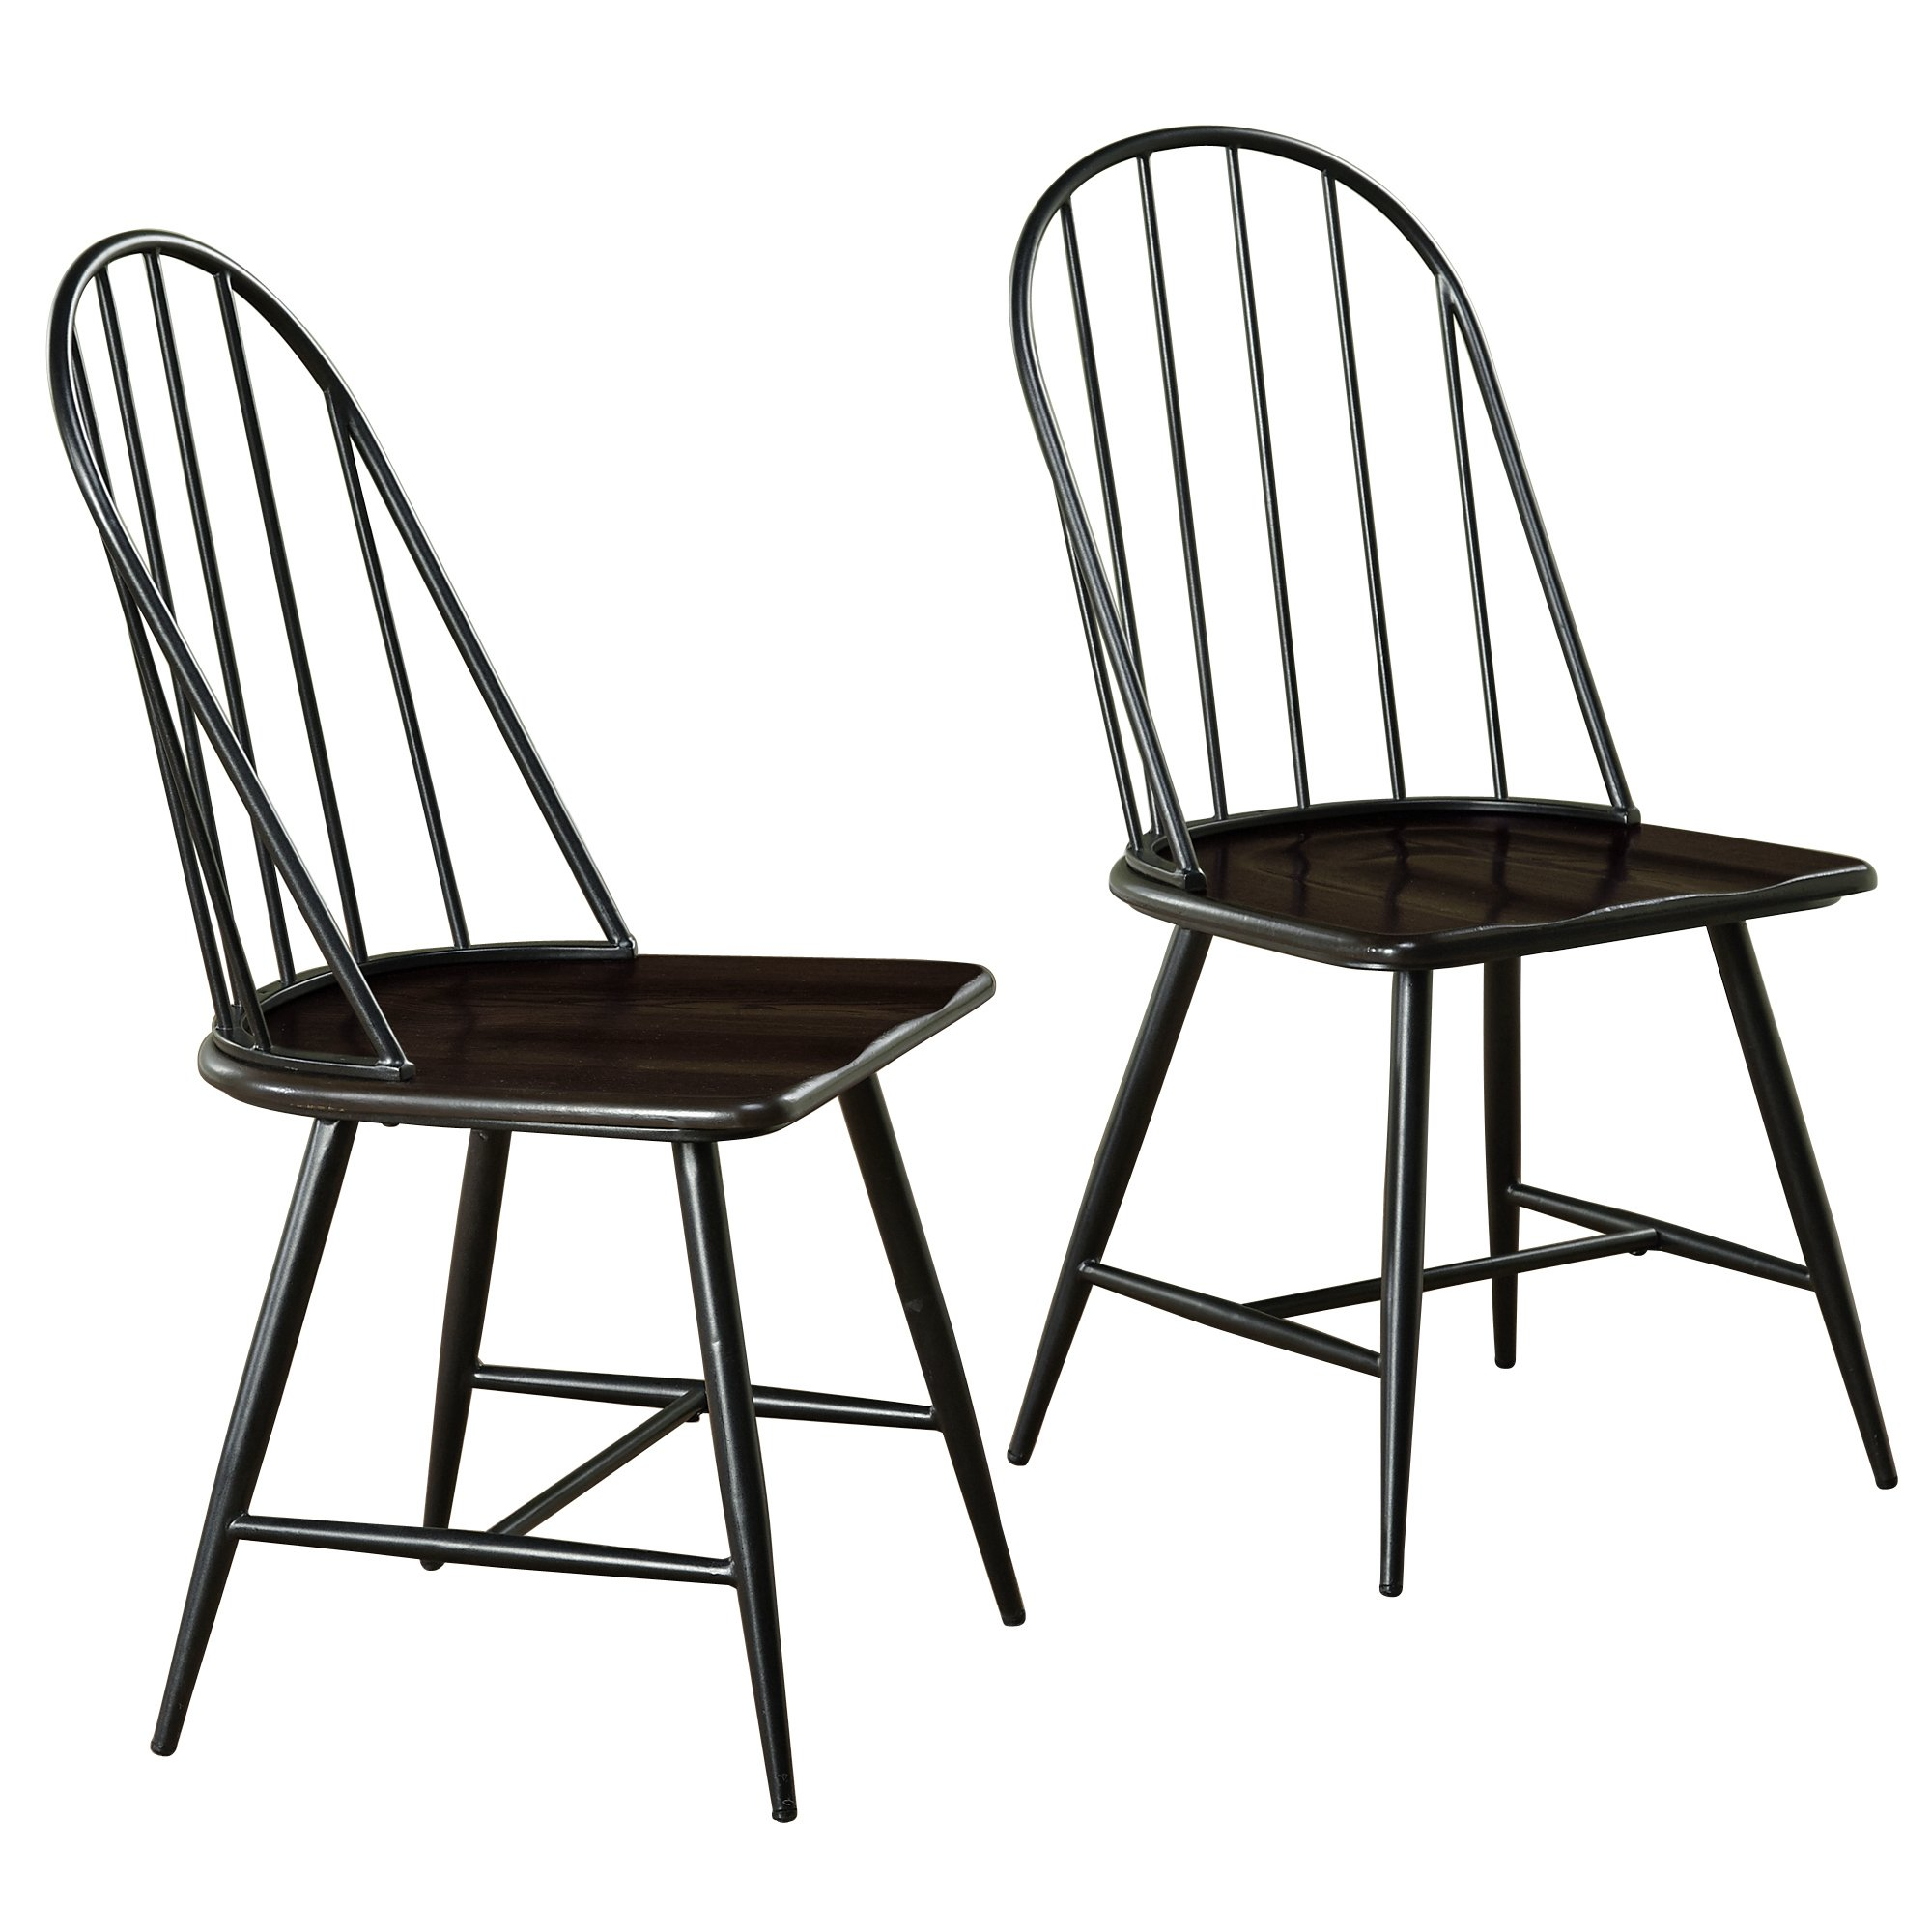 Target Marketing Systems Windsor Set of 2 Mixed Media Spindle Back Dining Chairs with Saddle Seat, Set of 2, Black/Espresso by Target Marketing Systems